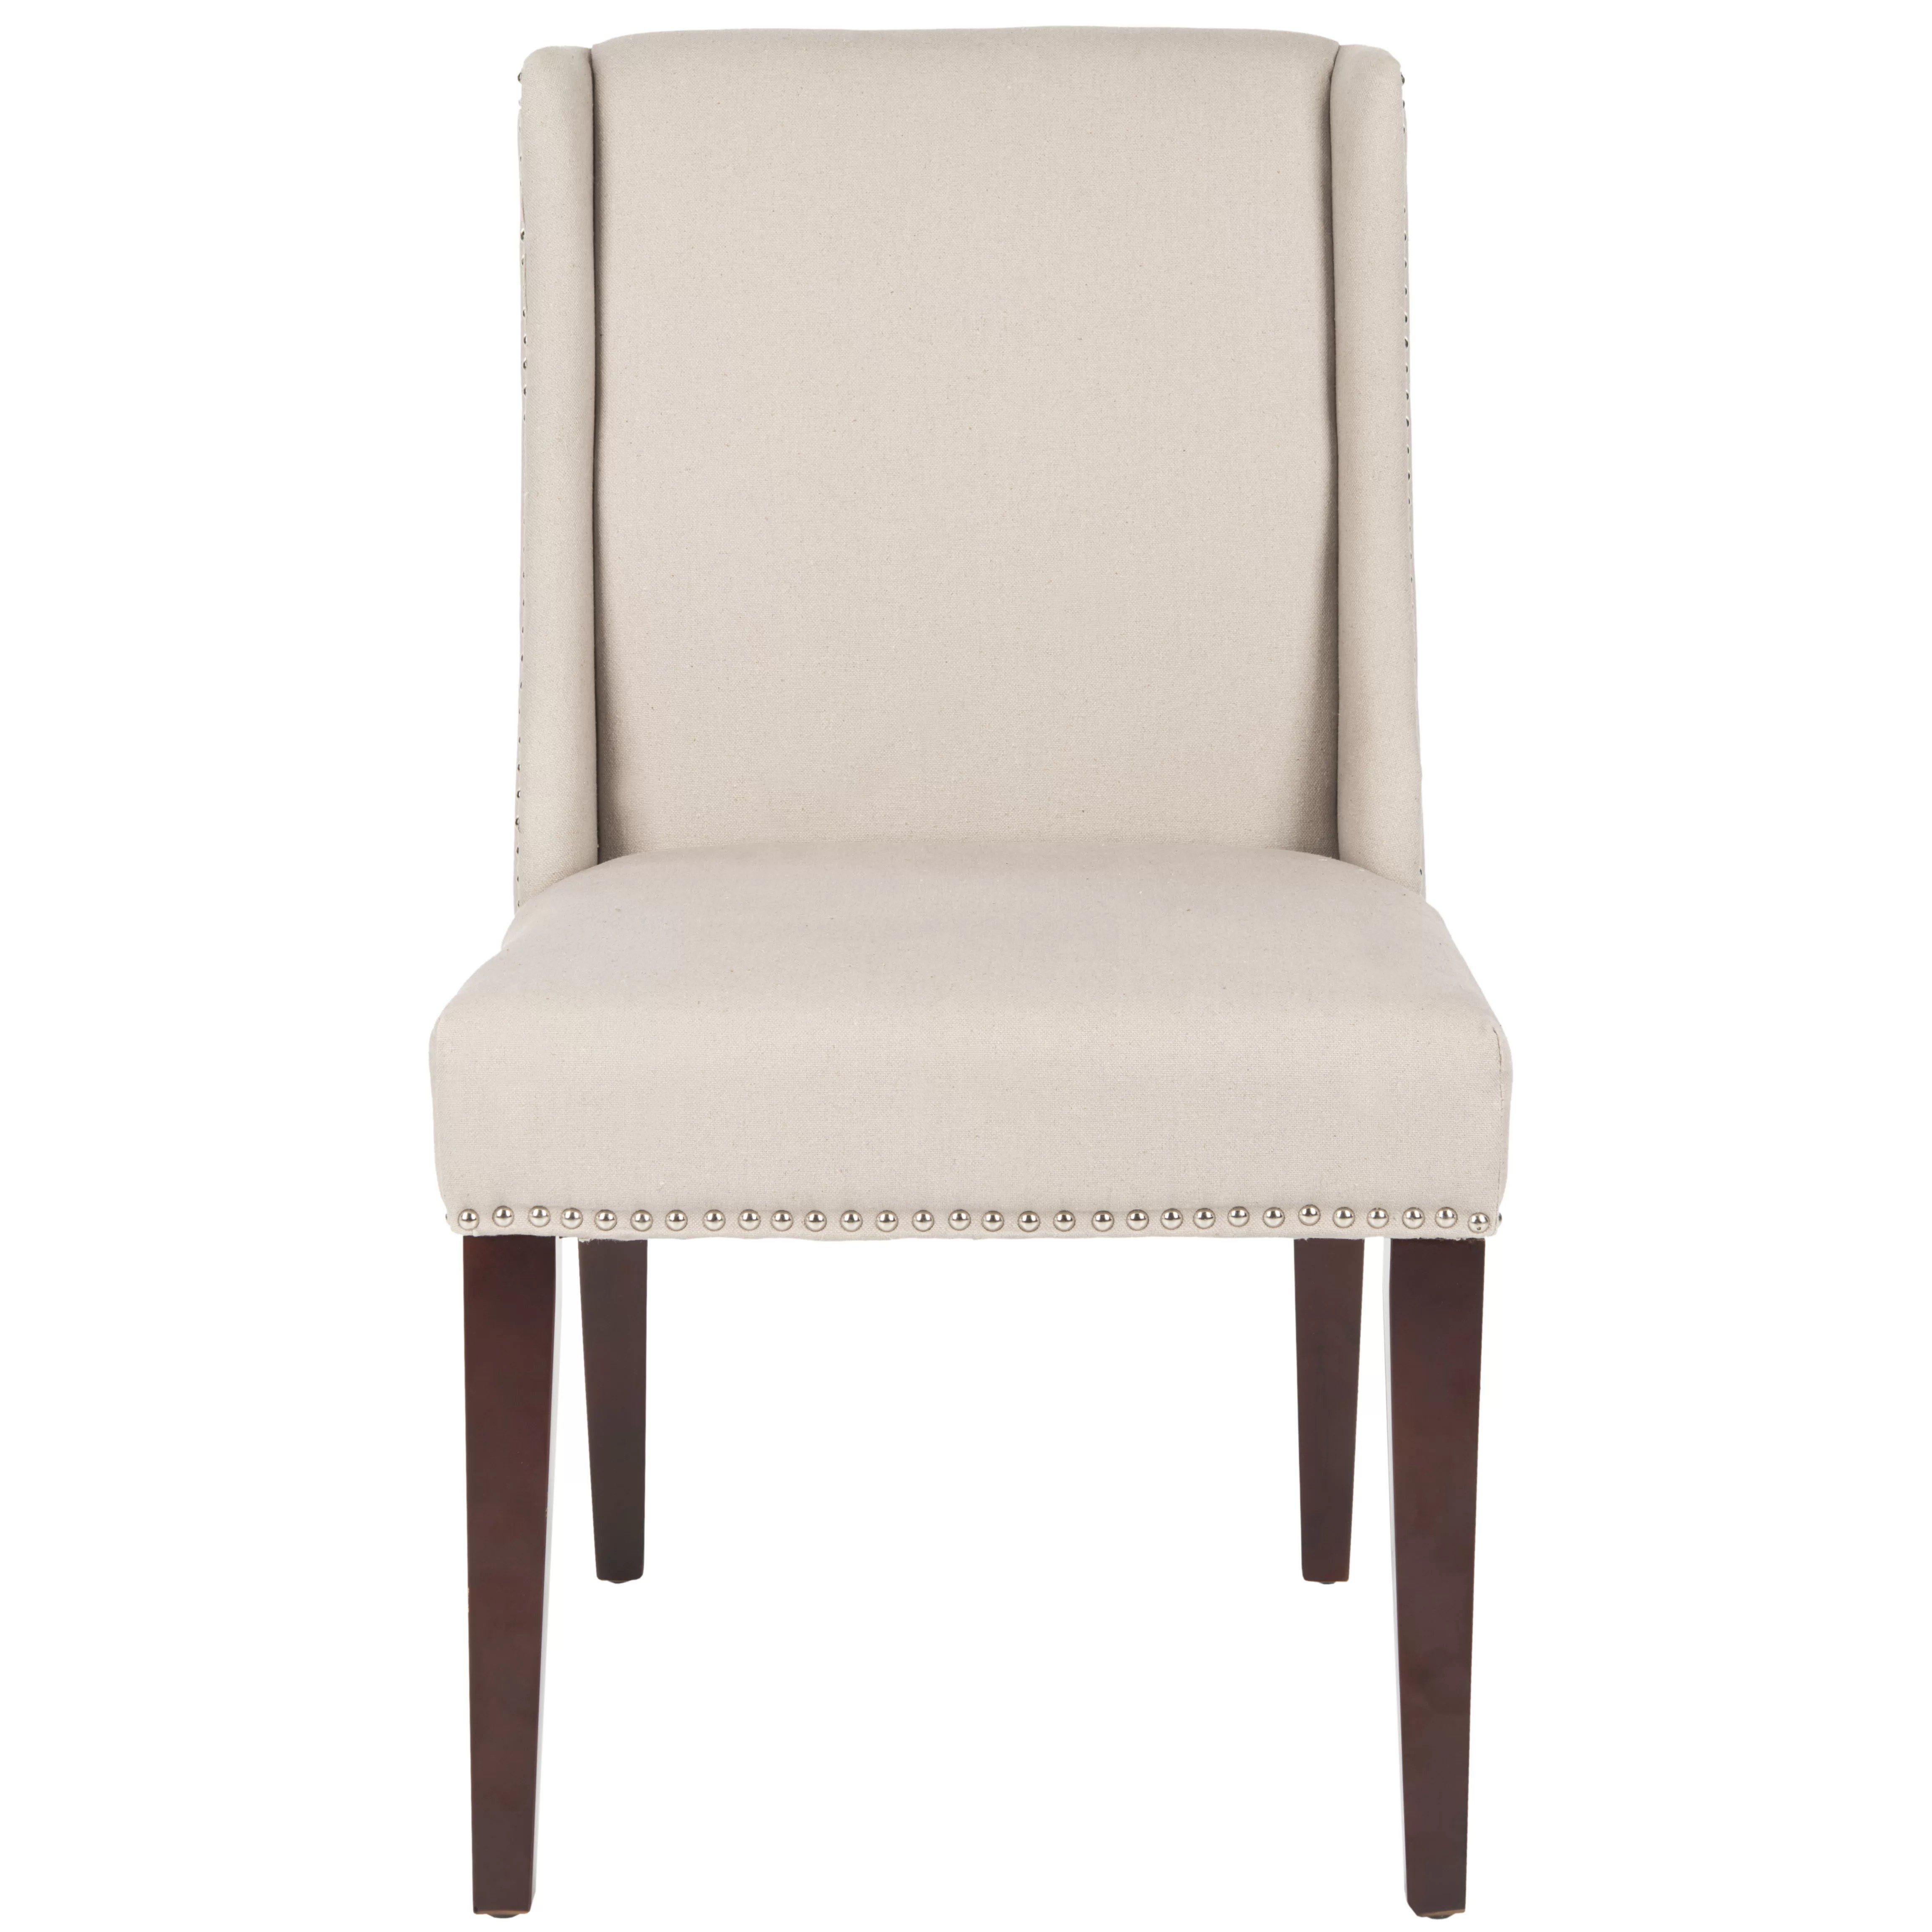 dining accent chairs aluminum folding with webbing safavieh collier solid birch upholstered chair